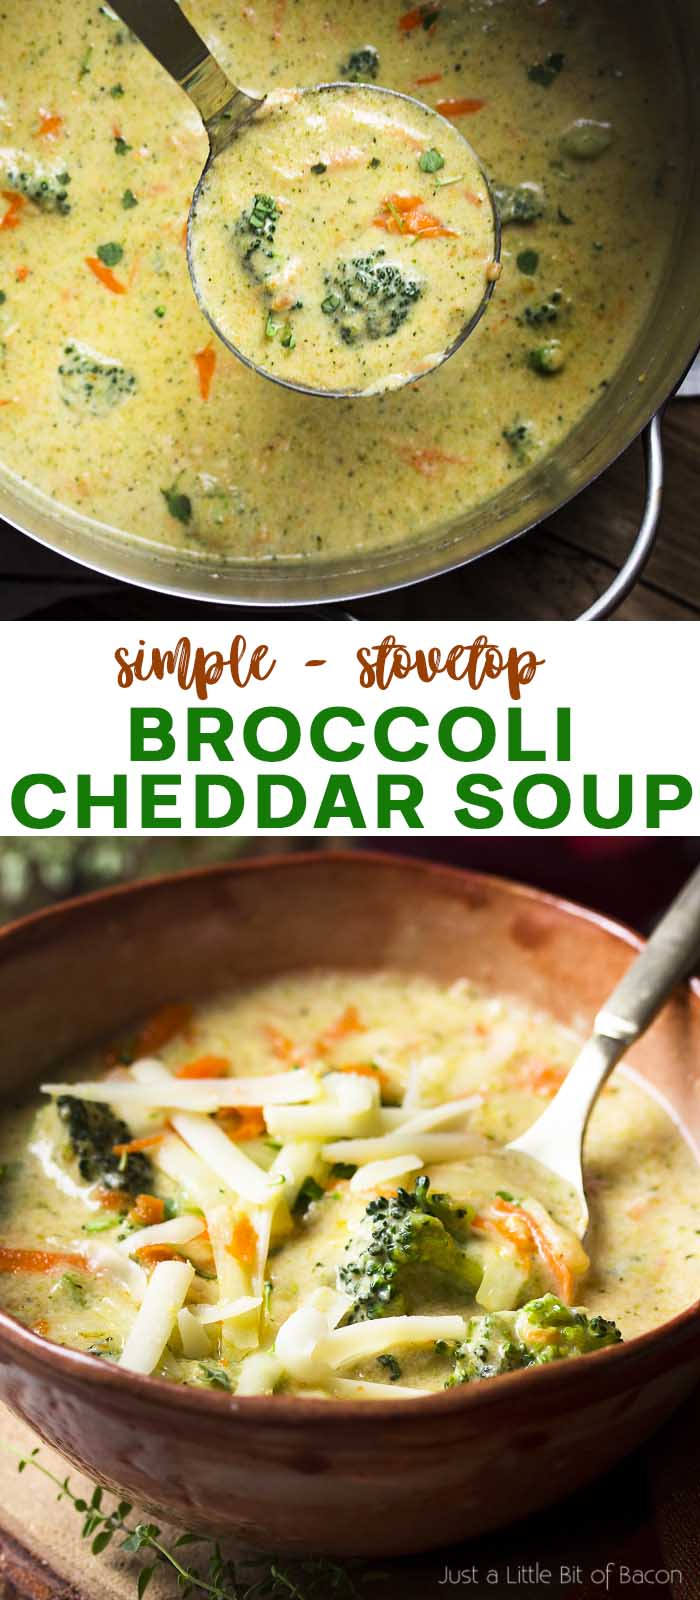 Soup in a ladle and in a bowl with text overlay - Broccoli Cheddar Soup.